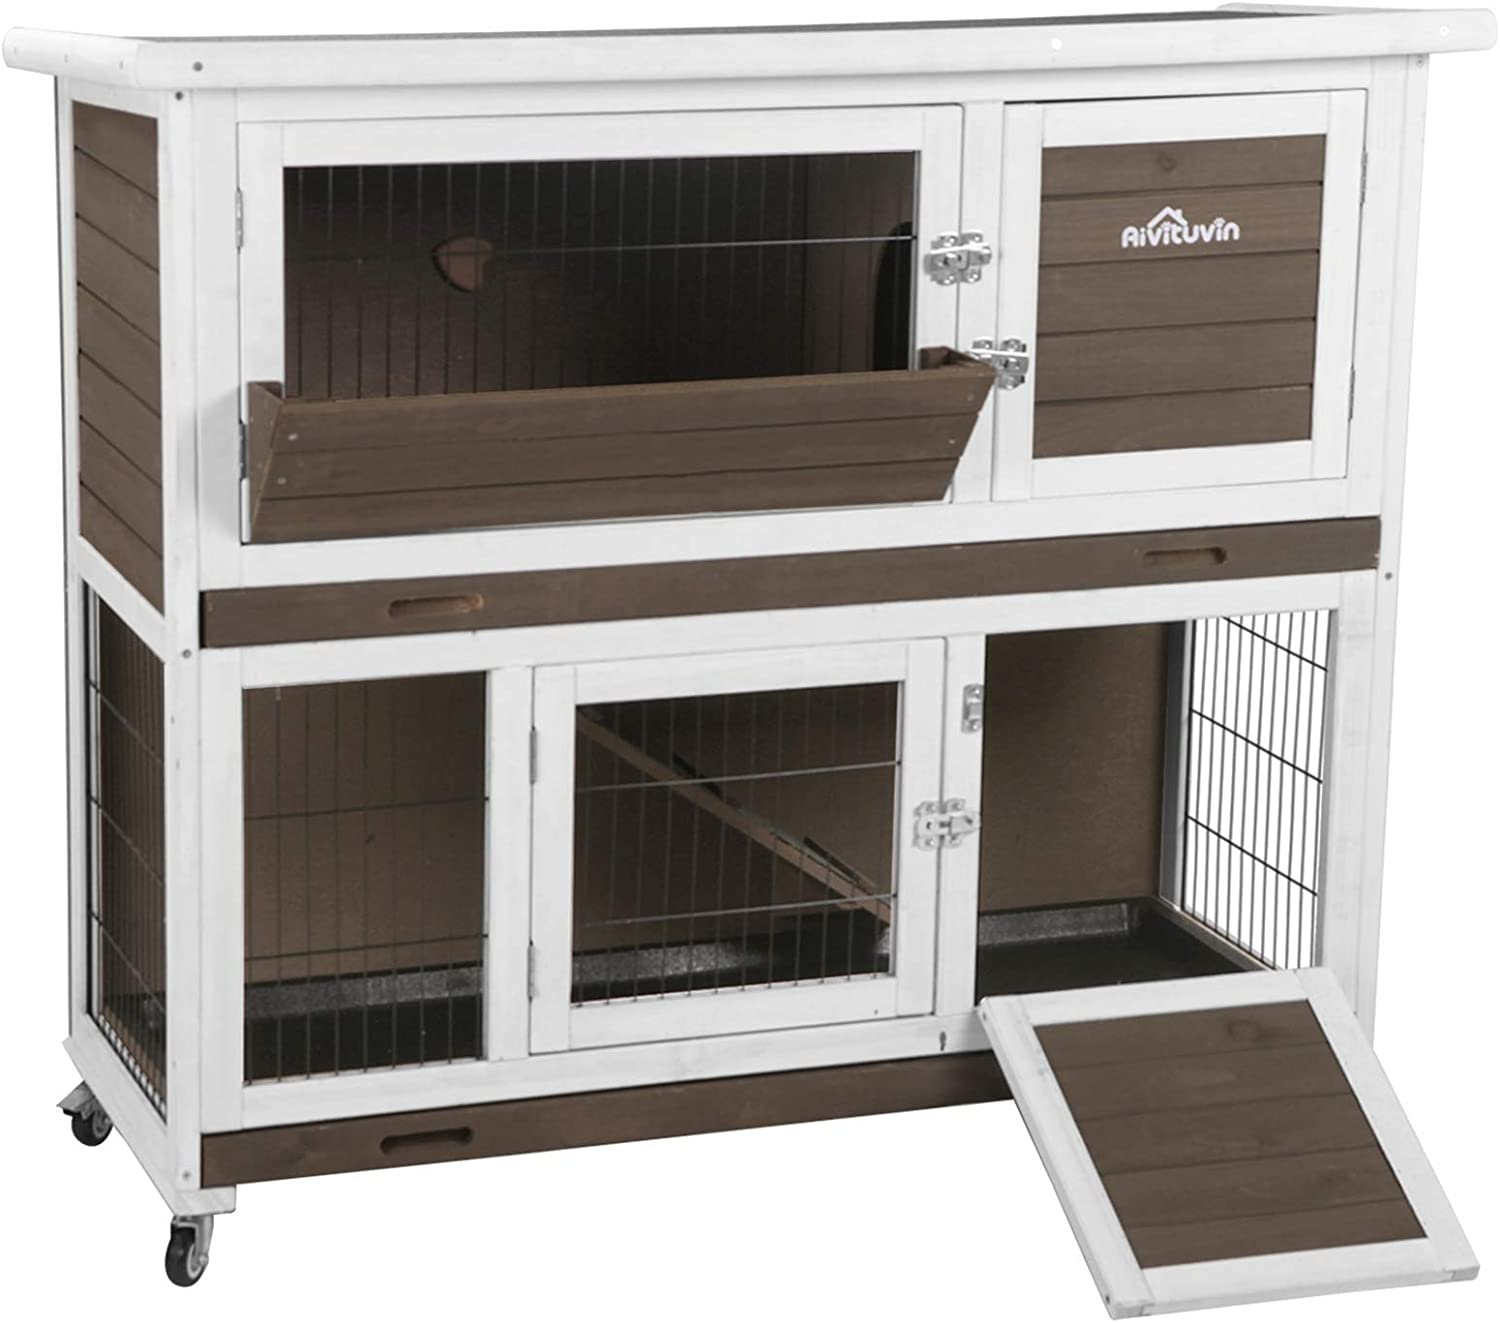 Aivituvin Rabbit Hutch Max 73% OFF Bunny Recommendation Cage Guinea Pig Outdoor Indoor Hous